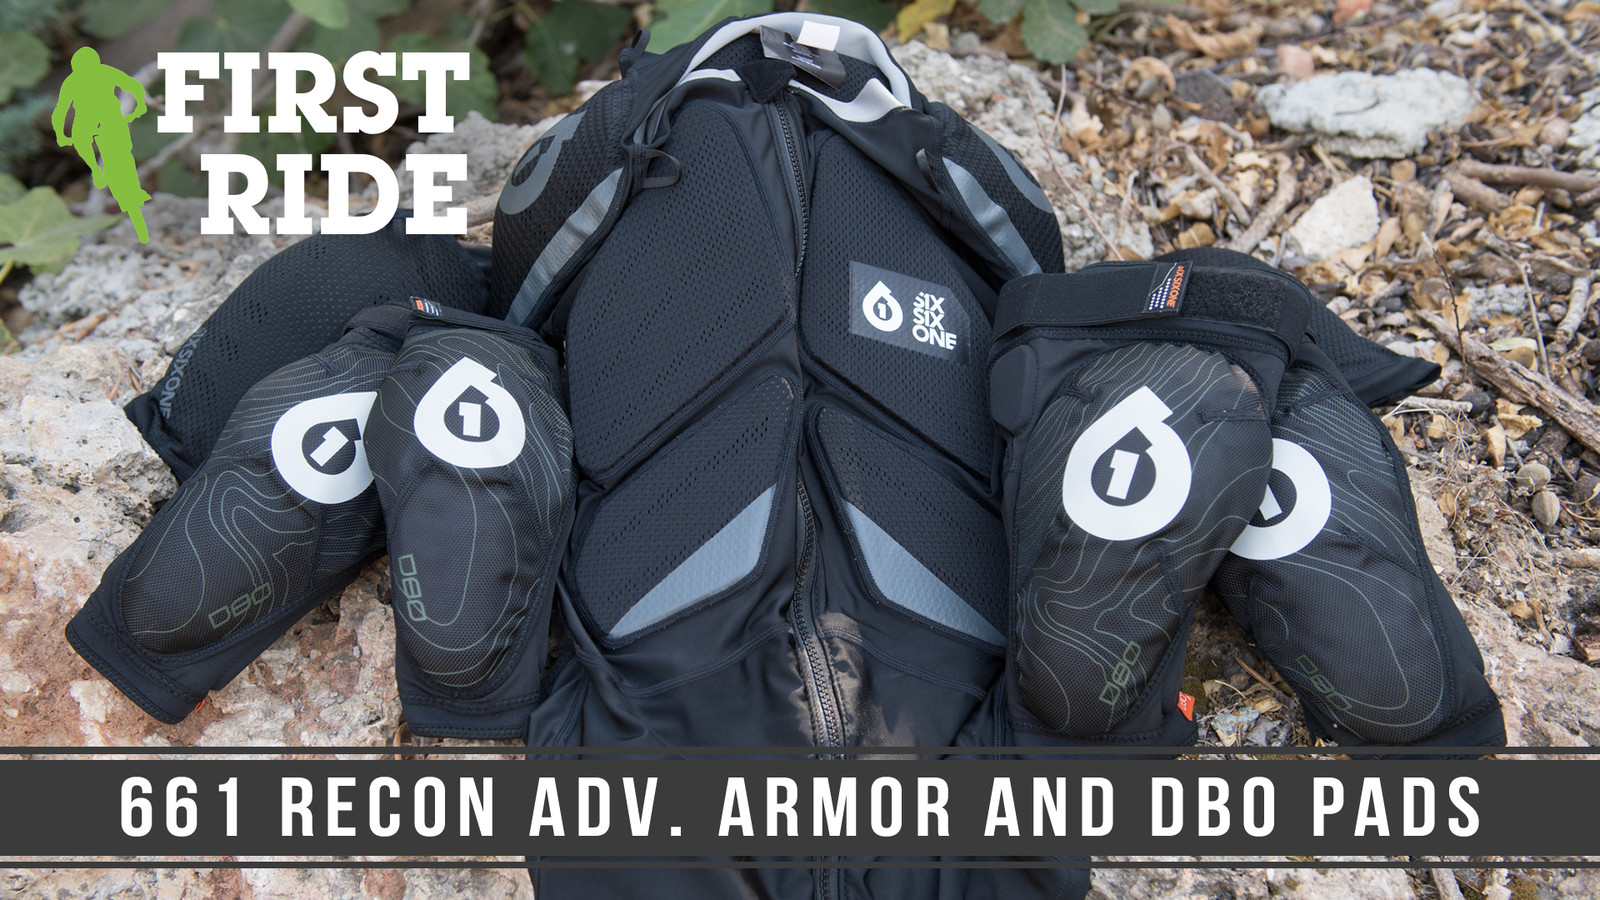 First Ride: 661 Recon Advanced Body Armor and DBO Knee/Elbow Pads